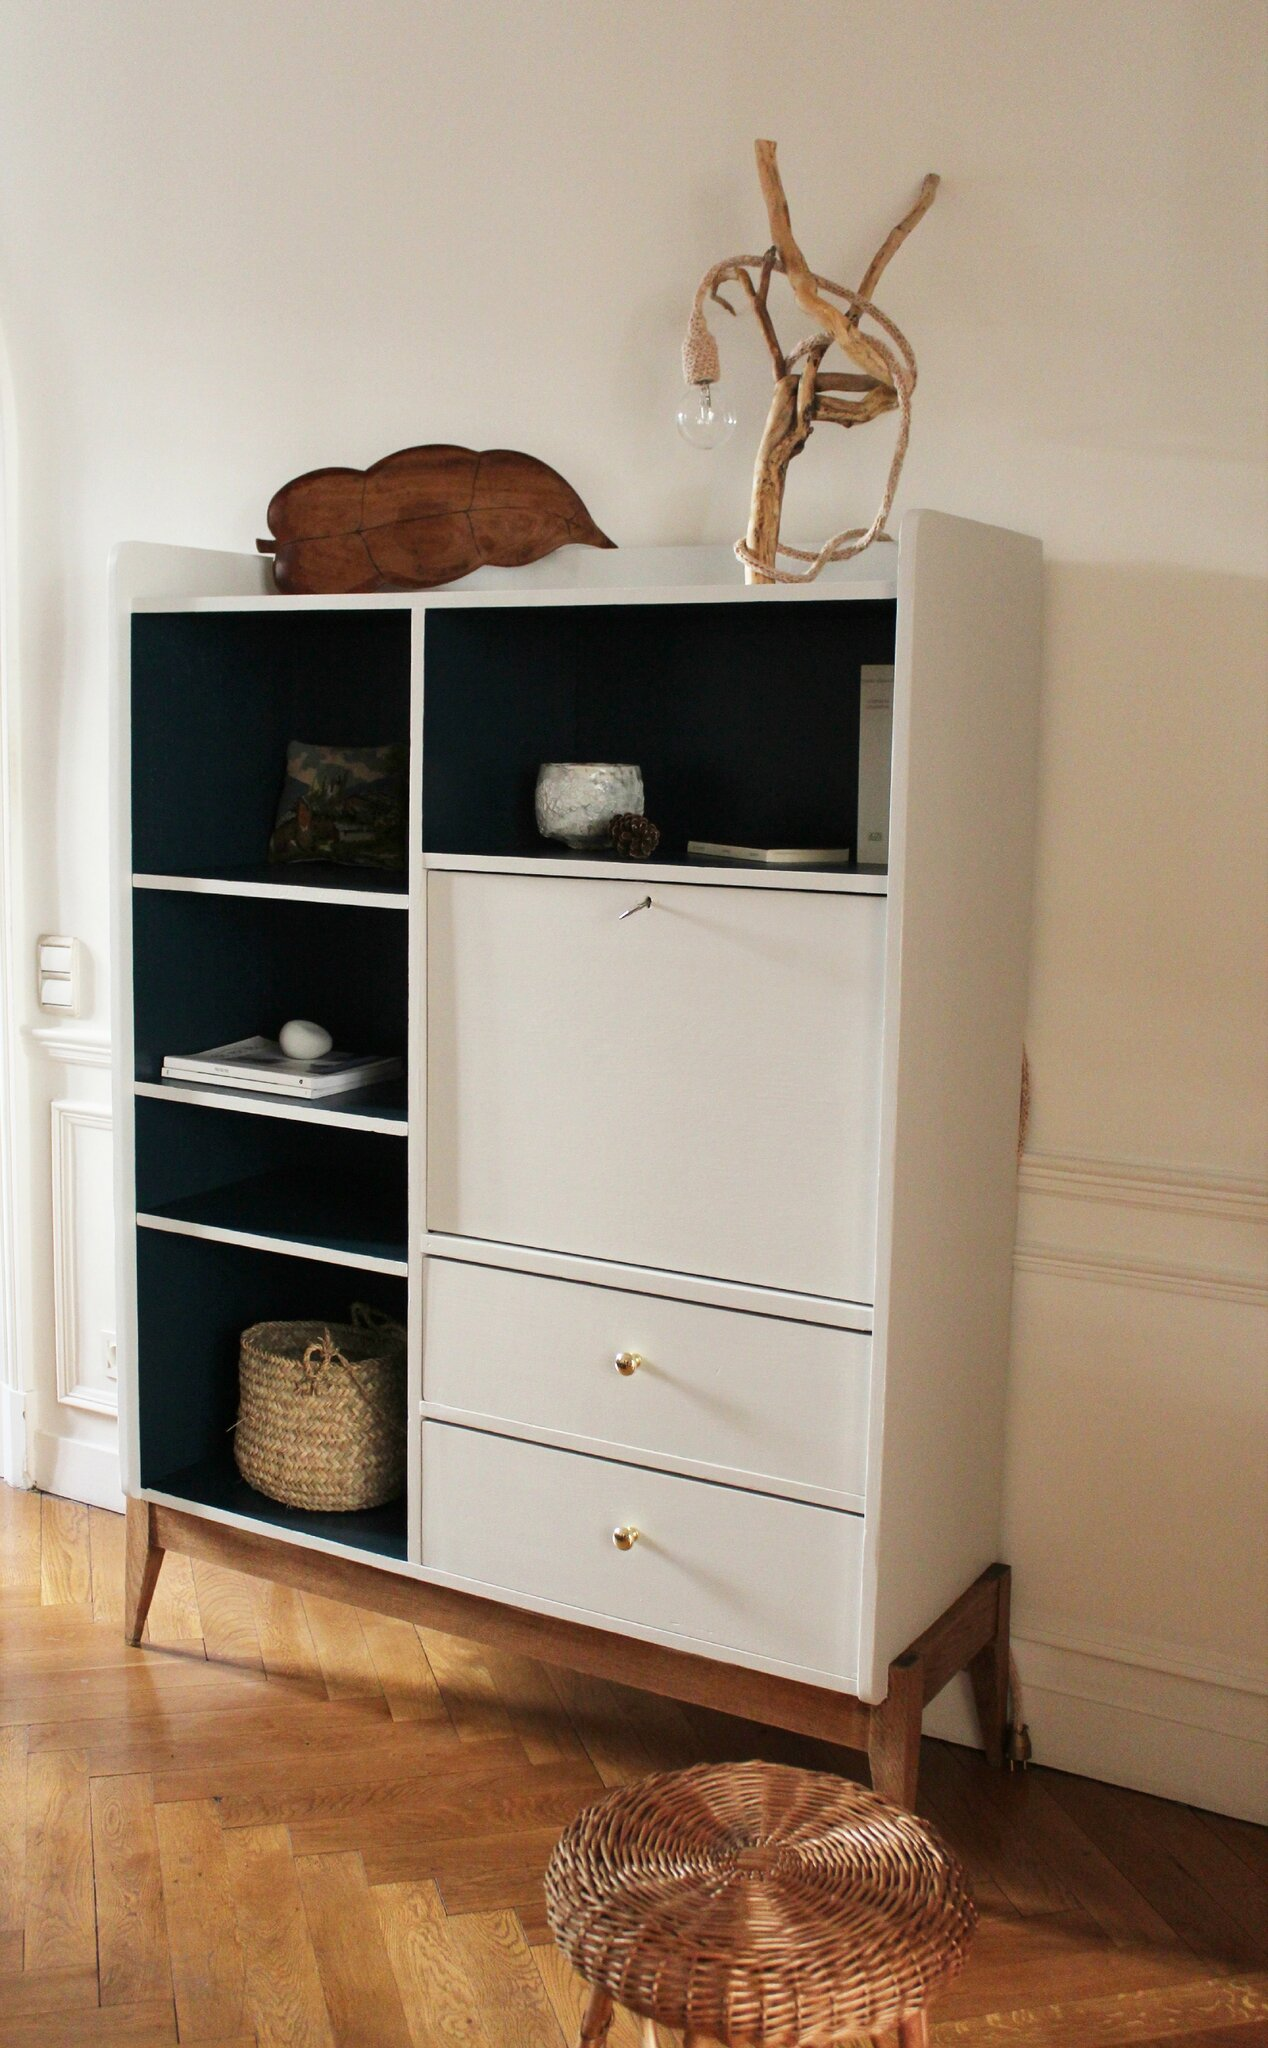 amoire biblioth que secr taire vintage ann es 50 trendy little. Black Bedroom Furniture Sets. Home Design Ideas